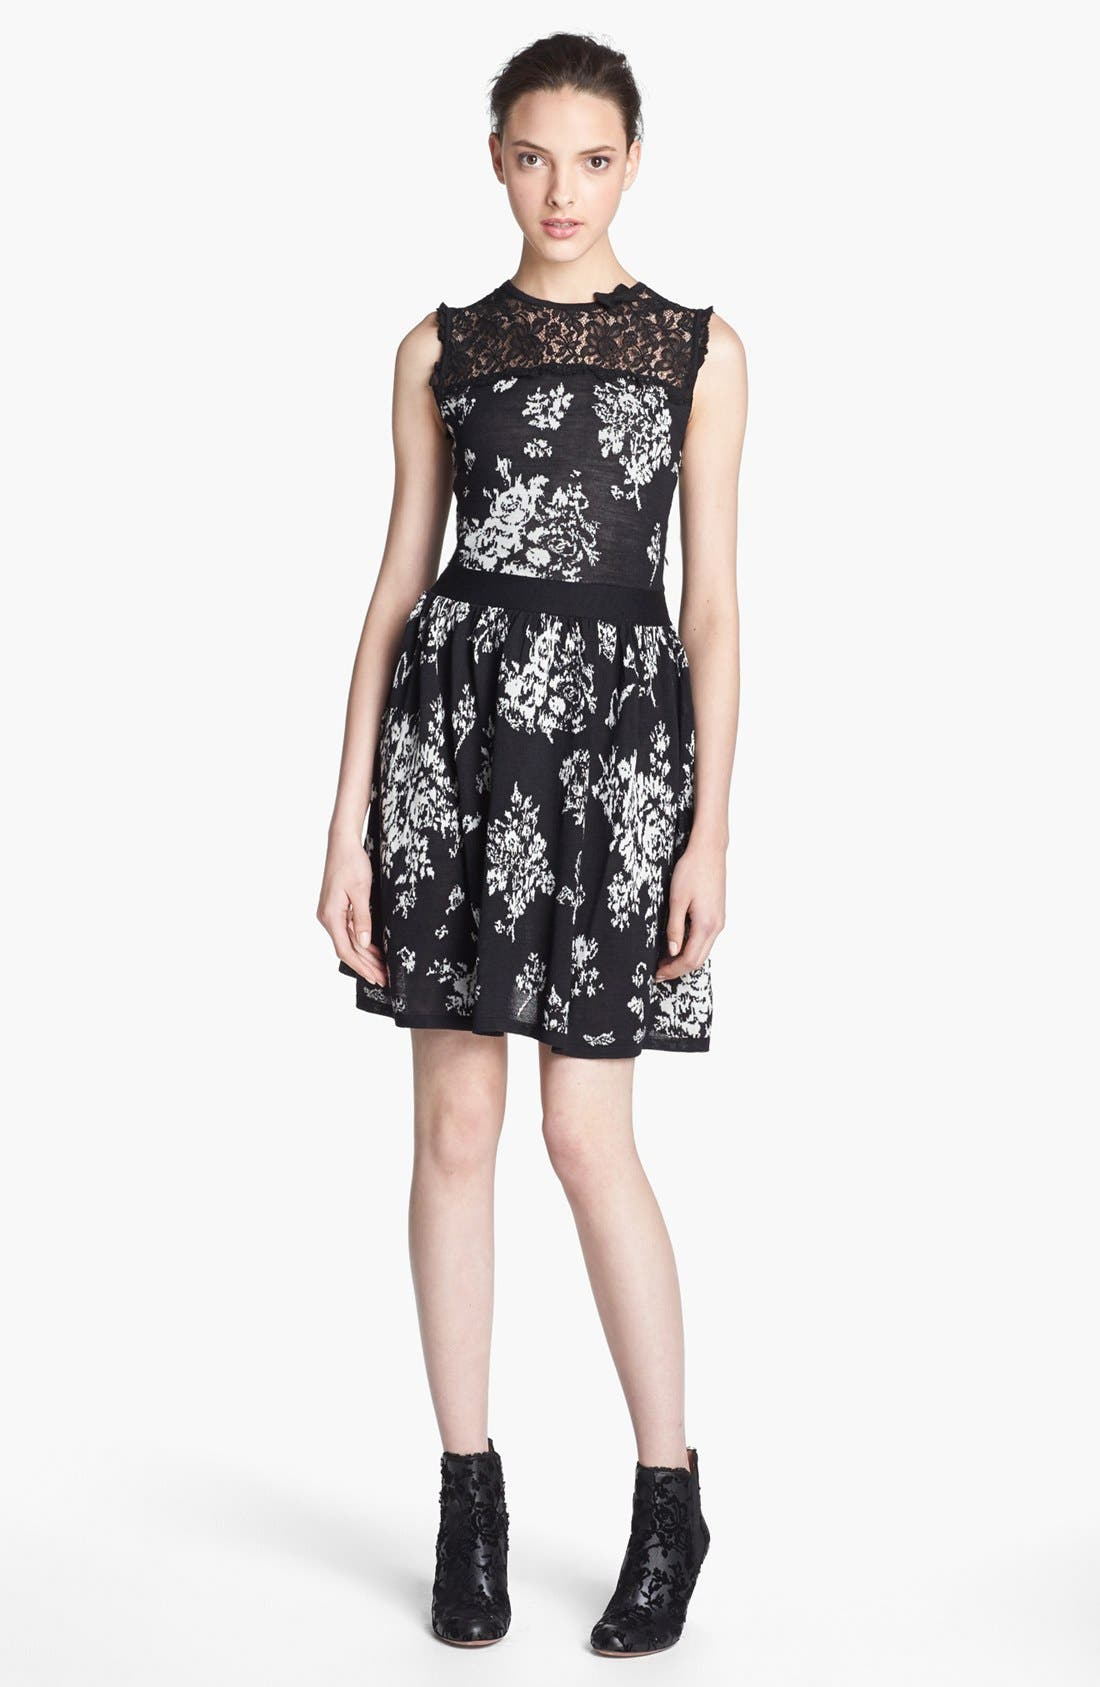 Alternate Image 1 Selected - RED Valentino Lace & Floral Jacquard Dress